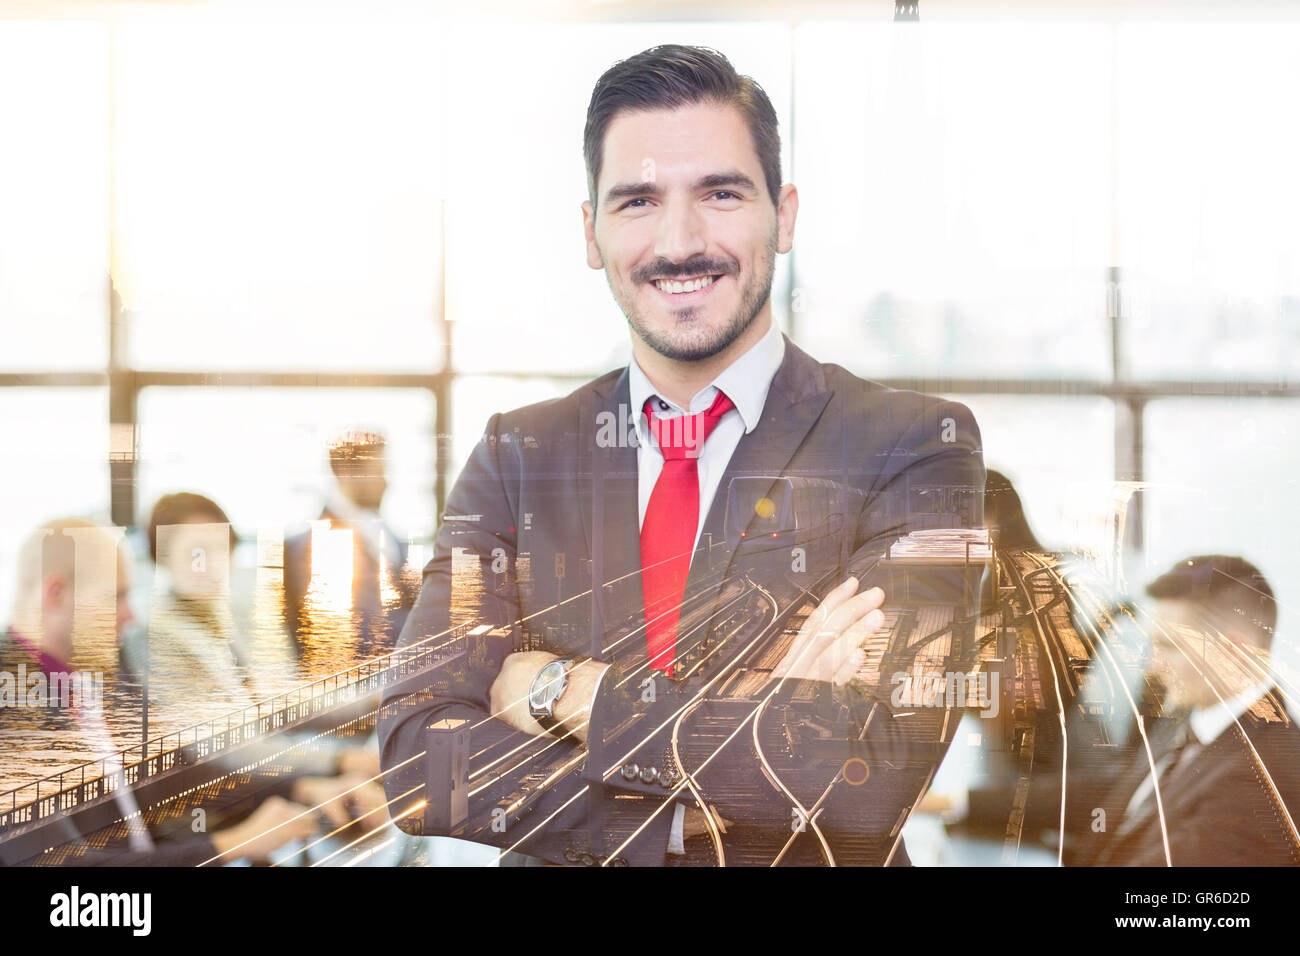 Team leader with coworkers in office. - Stock Image